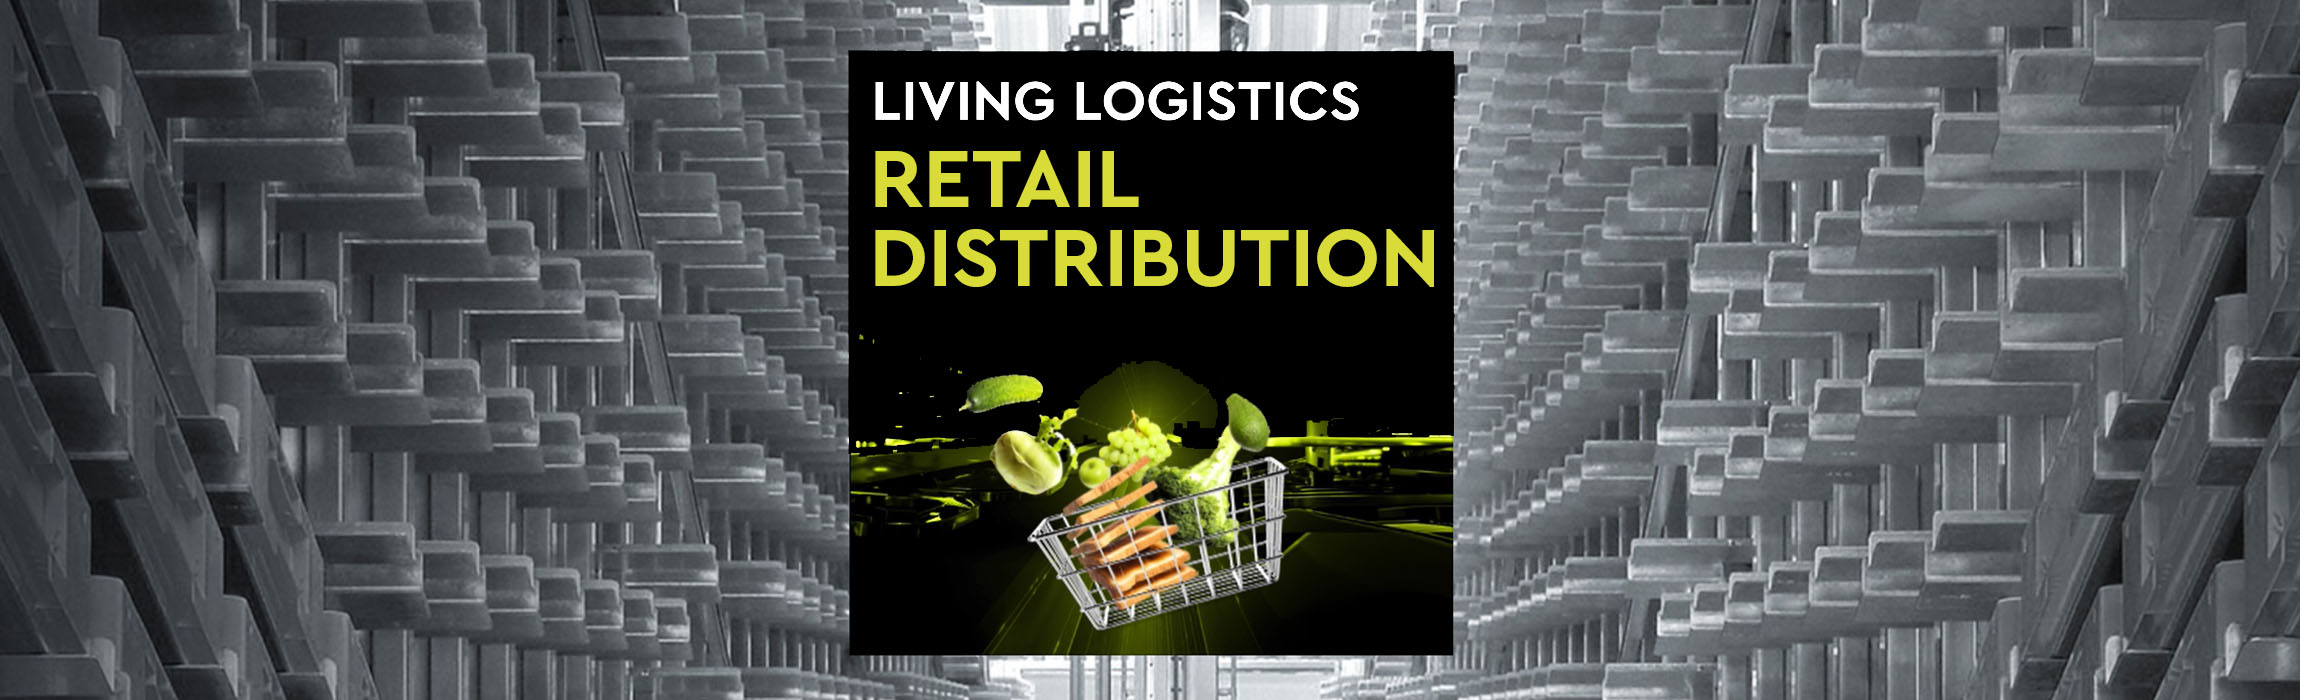 Retail distribution: The right automation solution with efficient technology for fresh and frozen goods.